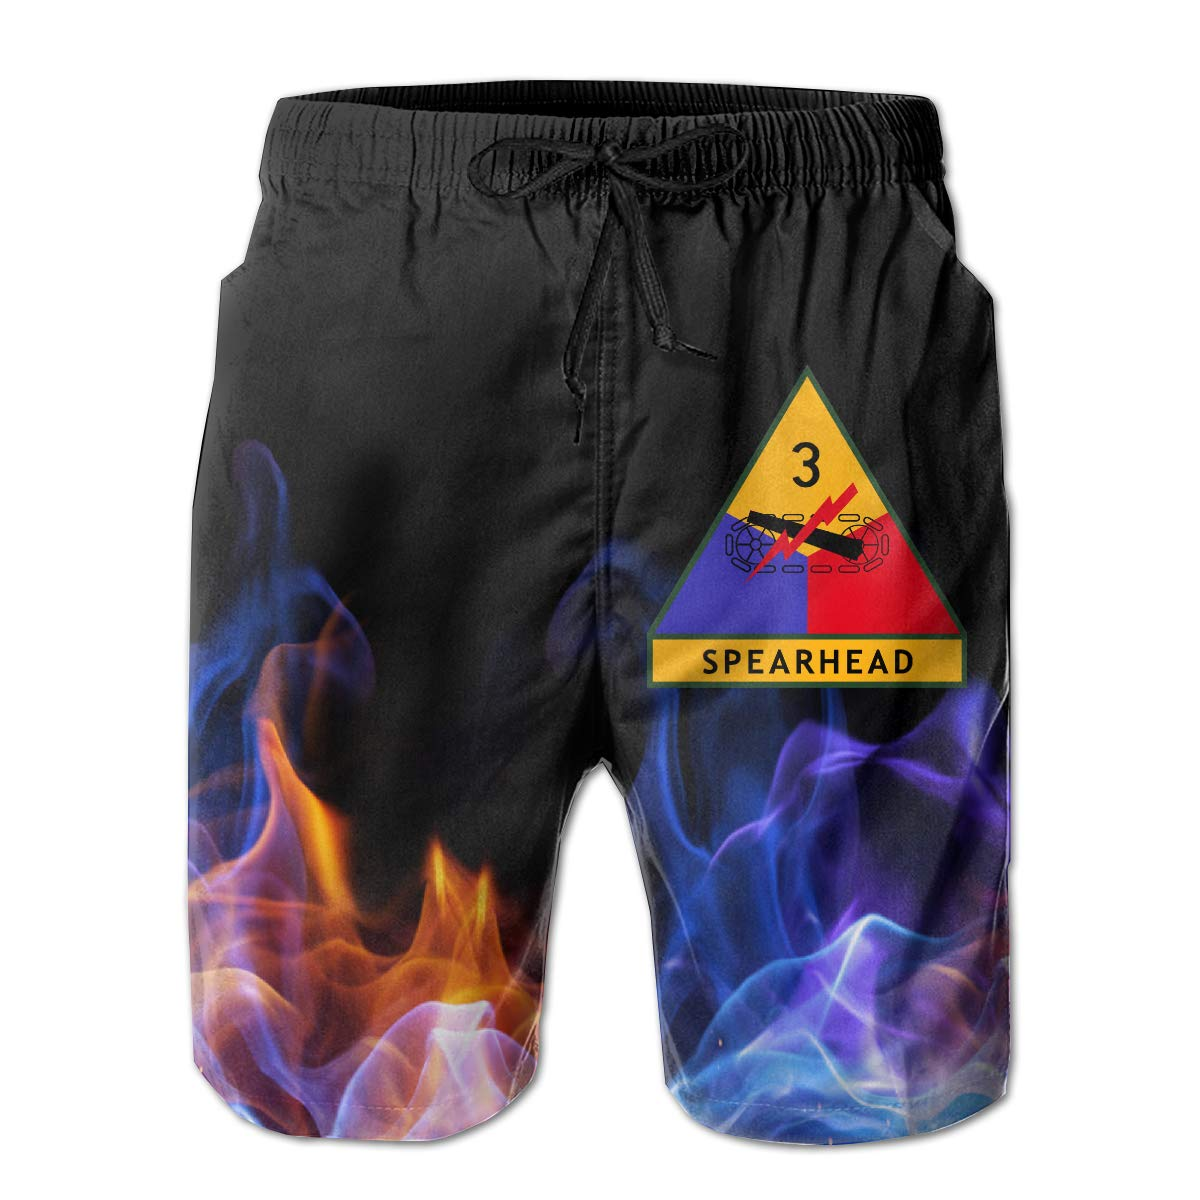 3rd Armored Division Mens Board Shorts Beach Swim Trunks Casual Classic Fit Shorts